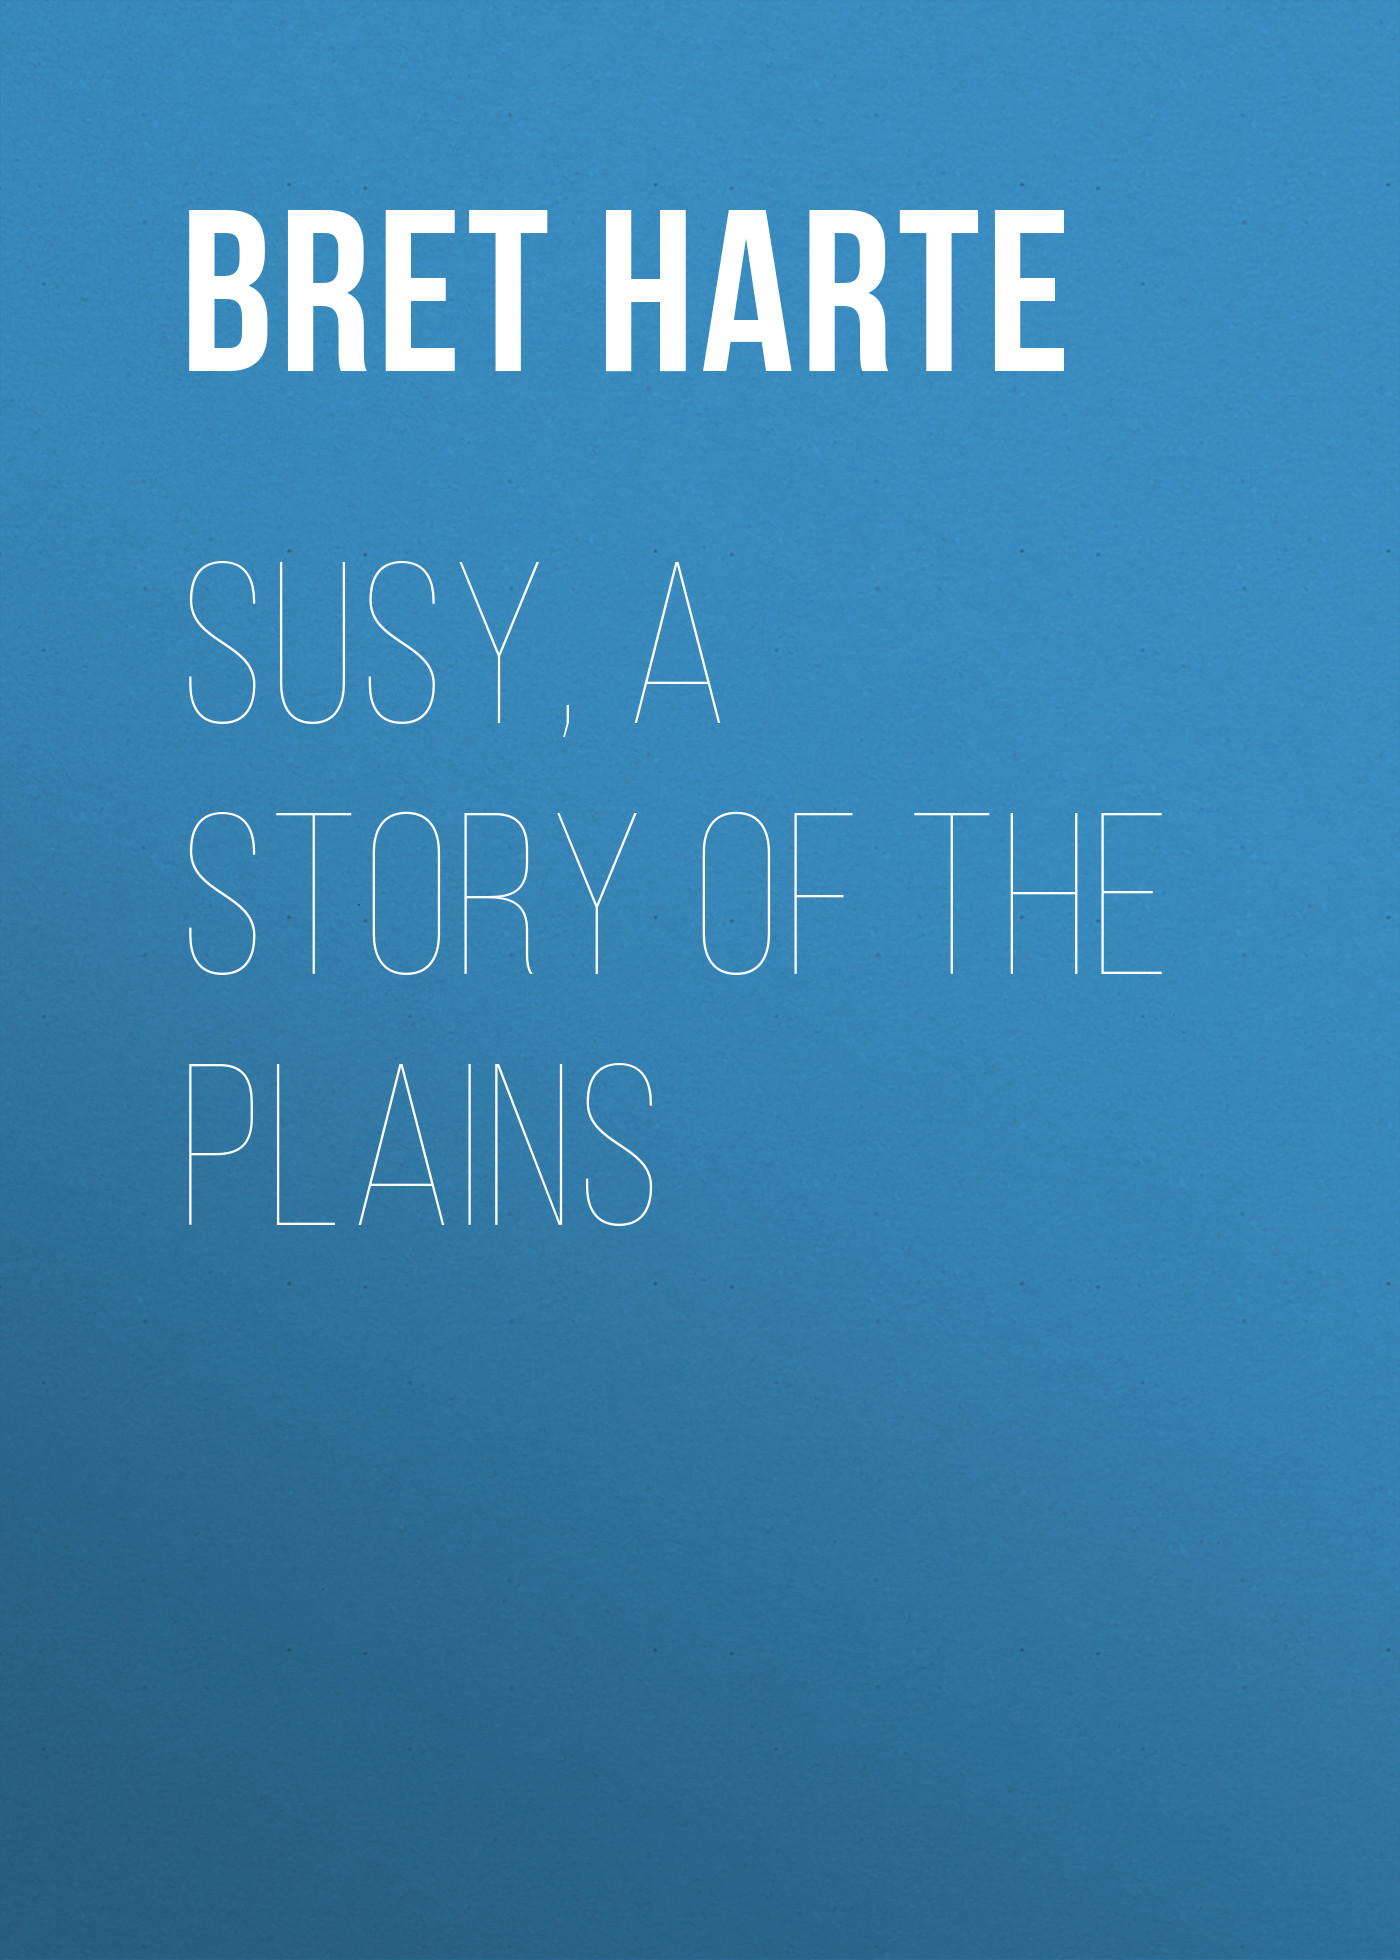 Bret Harte Susy, a Story of the Plains